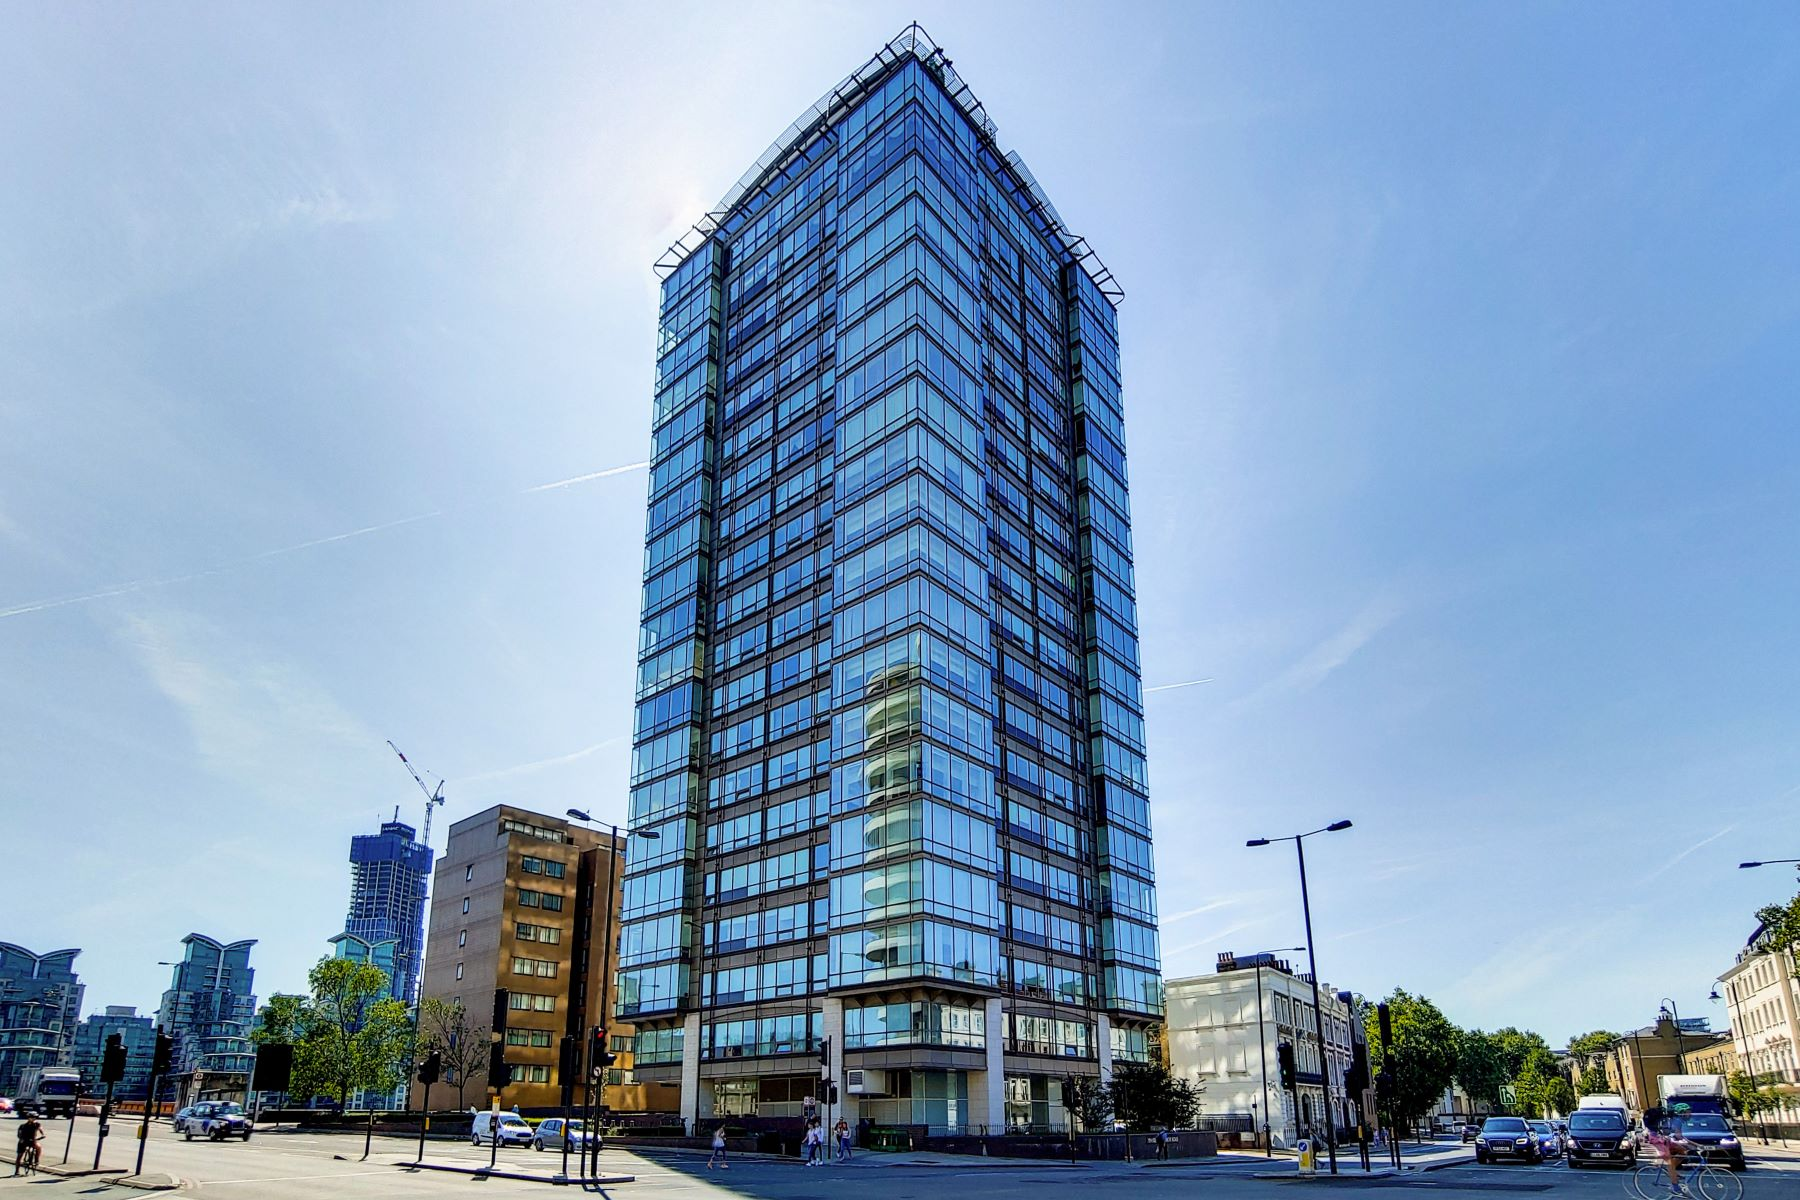 Apartments for Sale at 87-88 The Panoramic, 152 Grosvenor Road London, England SW1V 3JL United Kingdom